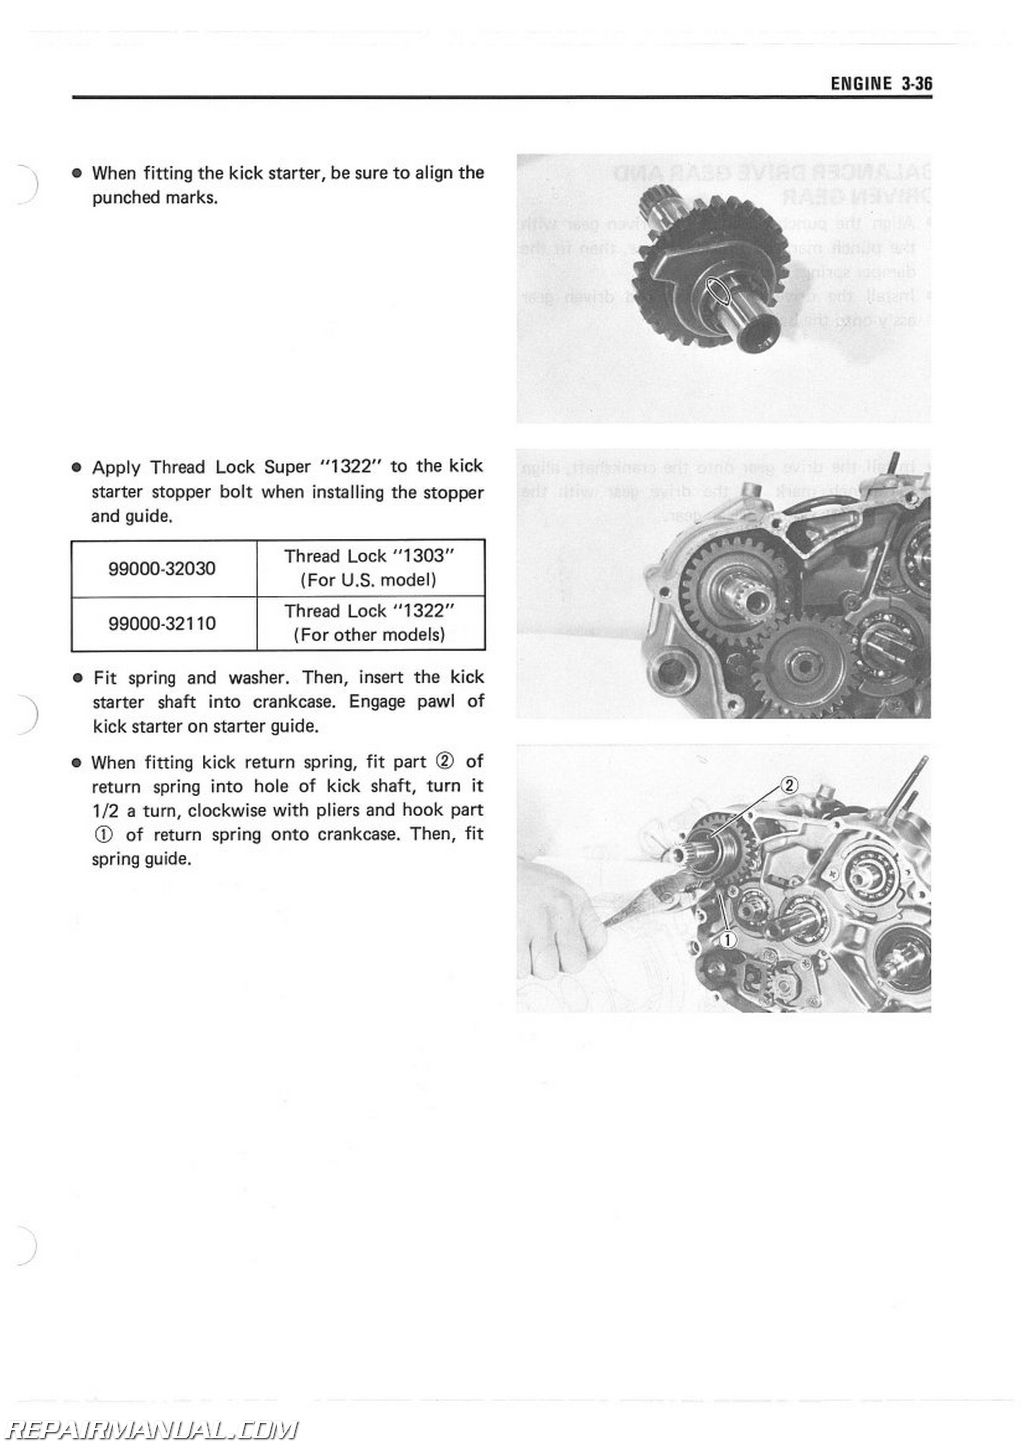 Lt250r Engine Diagram Wiring Library 85 Suzuki Lt 250 Schematics 1985 1986 Atv Service Manual